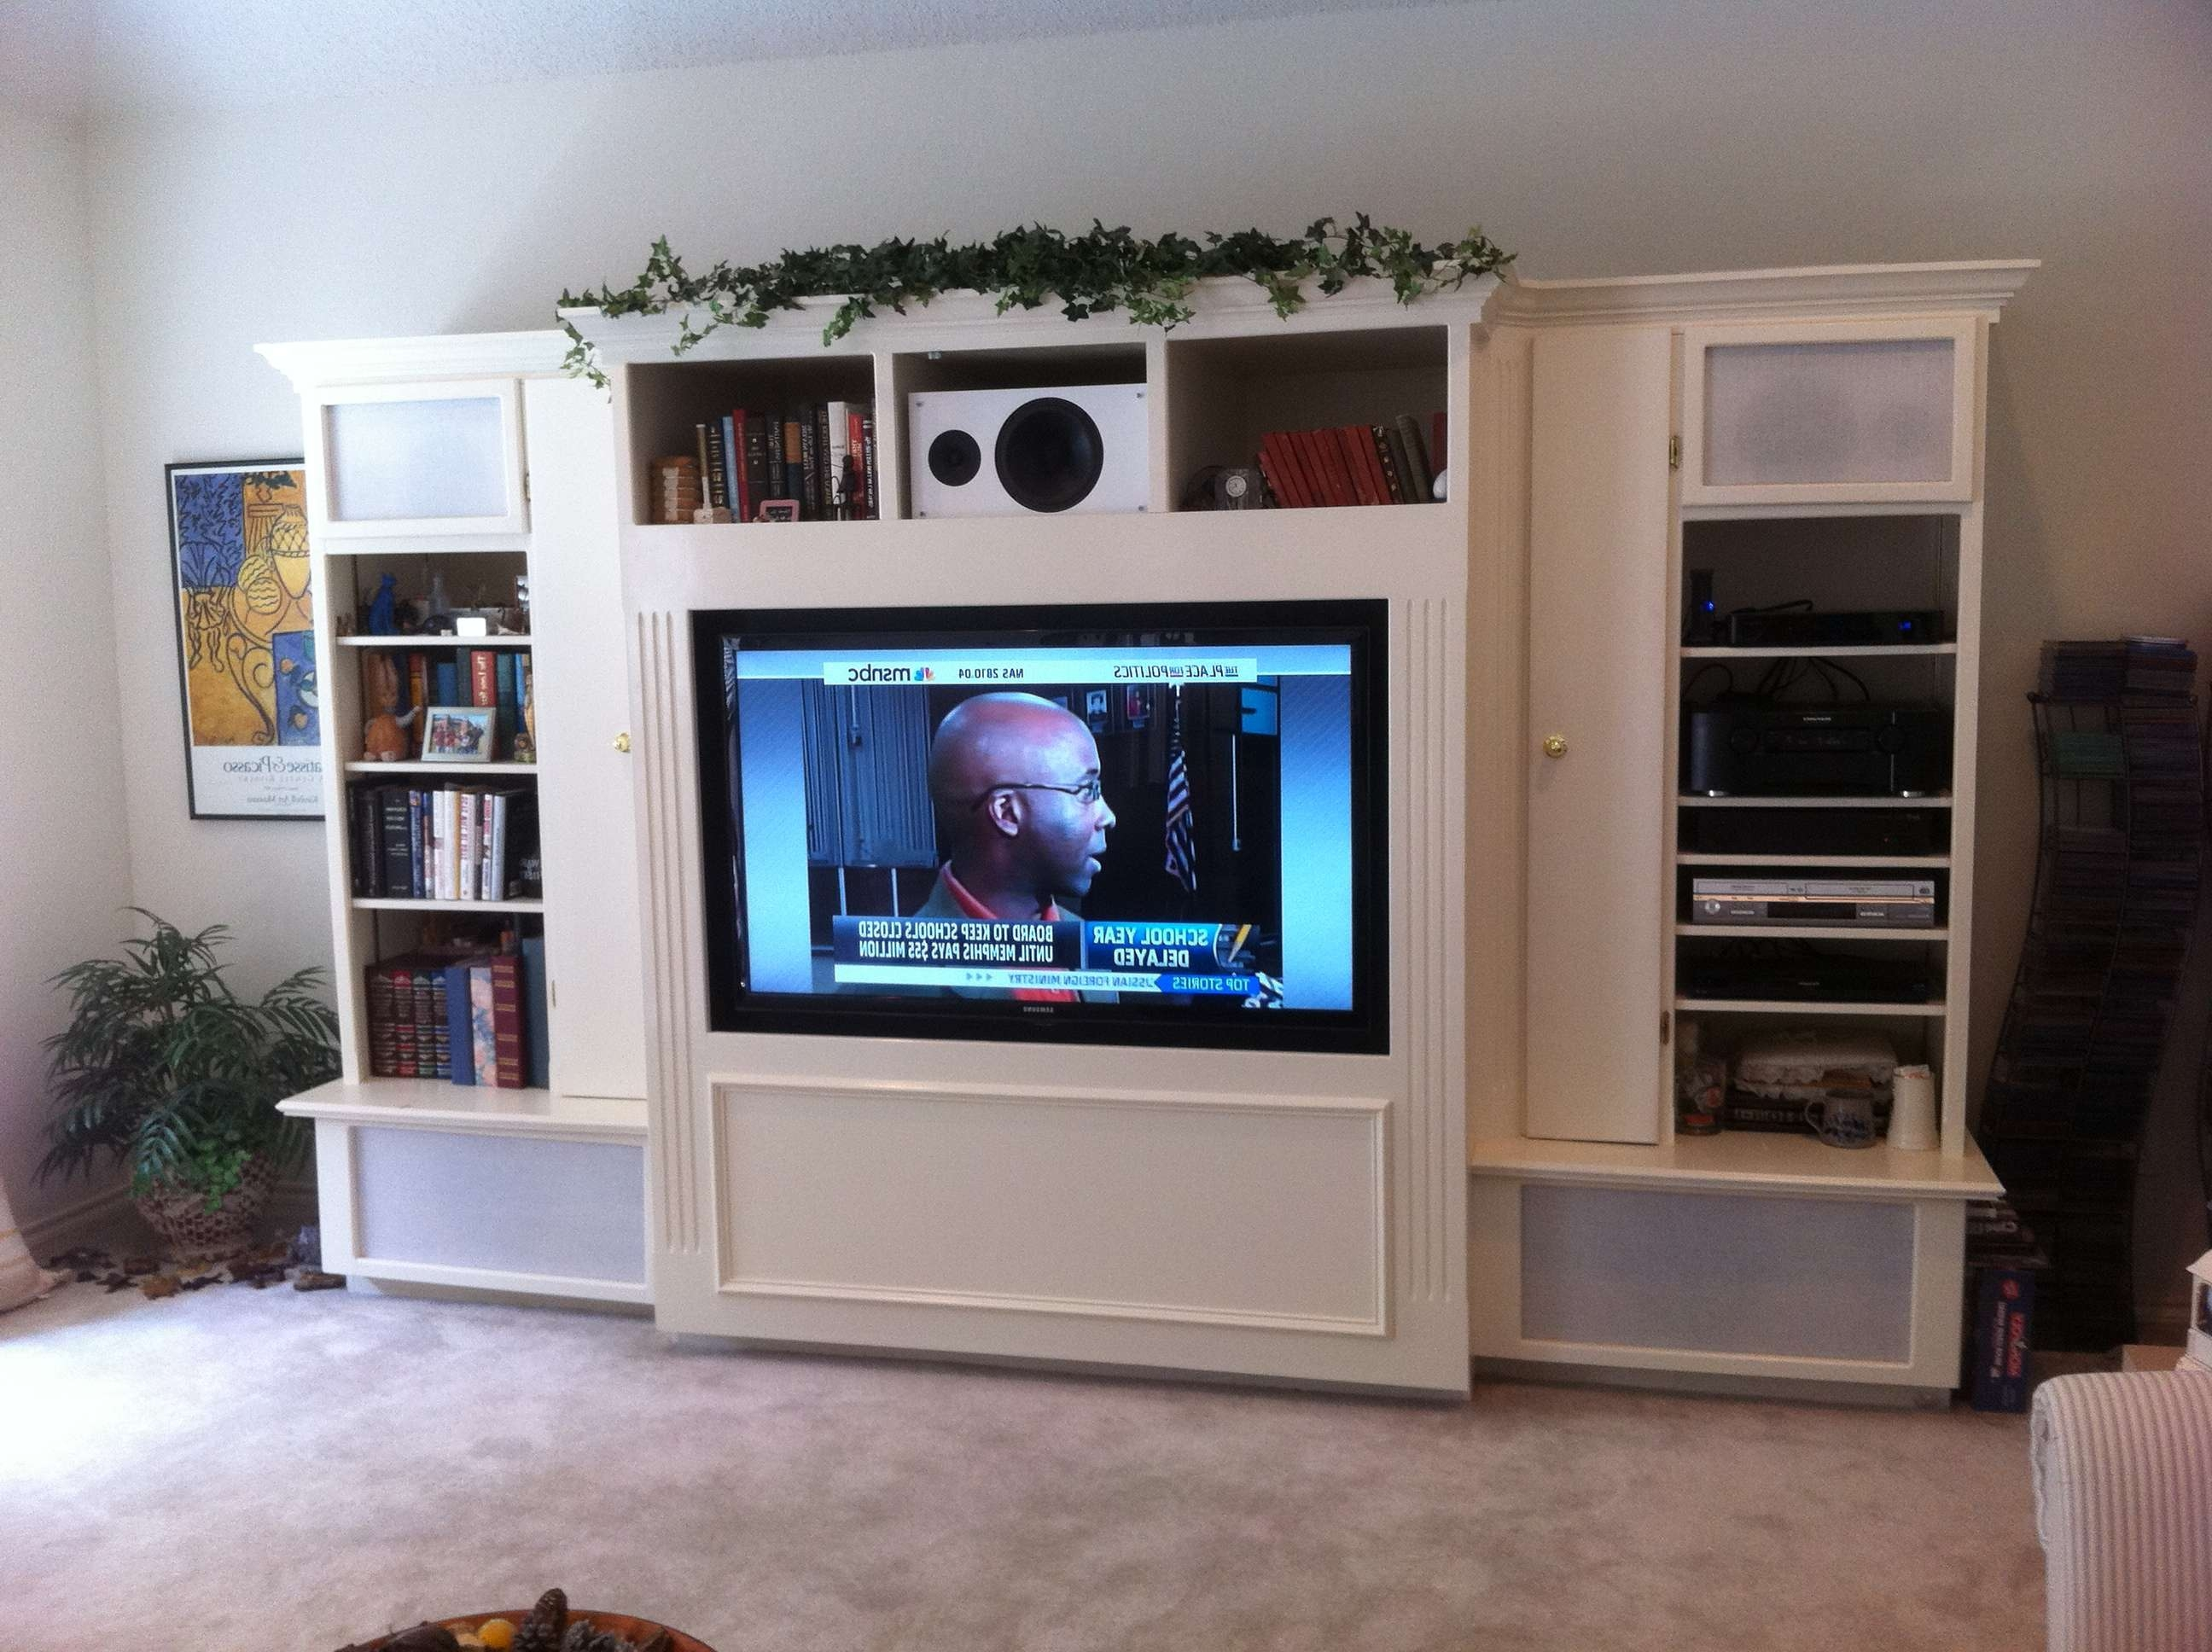 White Wooden Cabinet And Shelves Also Rectangle Black Flat Screen Pertaining To Wall Mounted Tv Cabinets For Flat Screens With Doors (View 19 of 20)